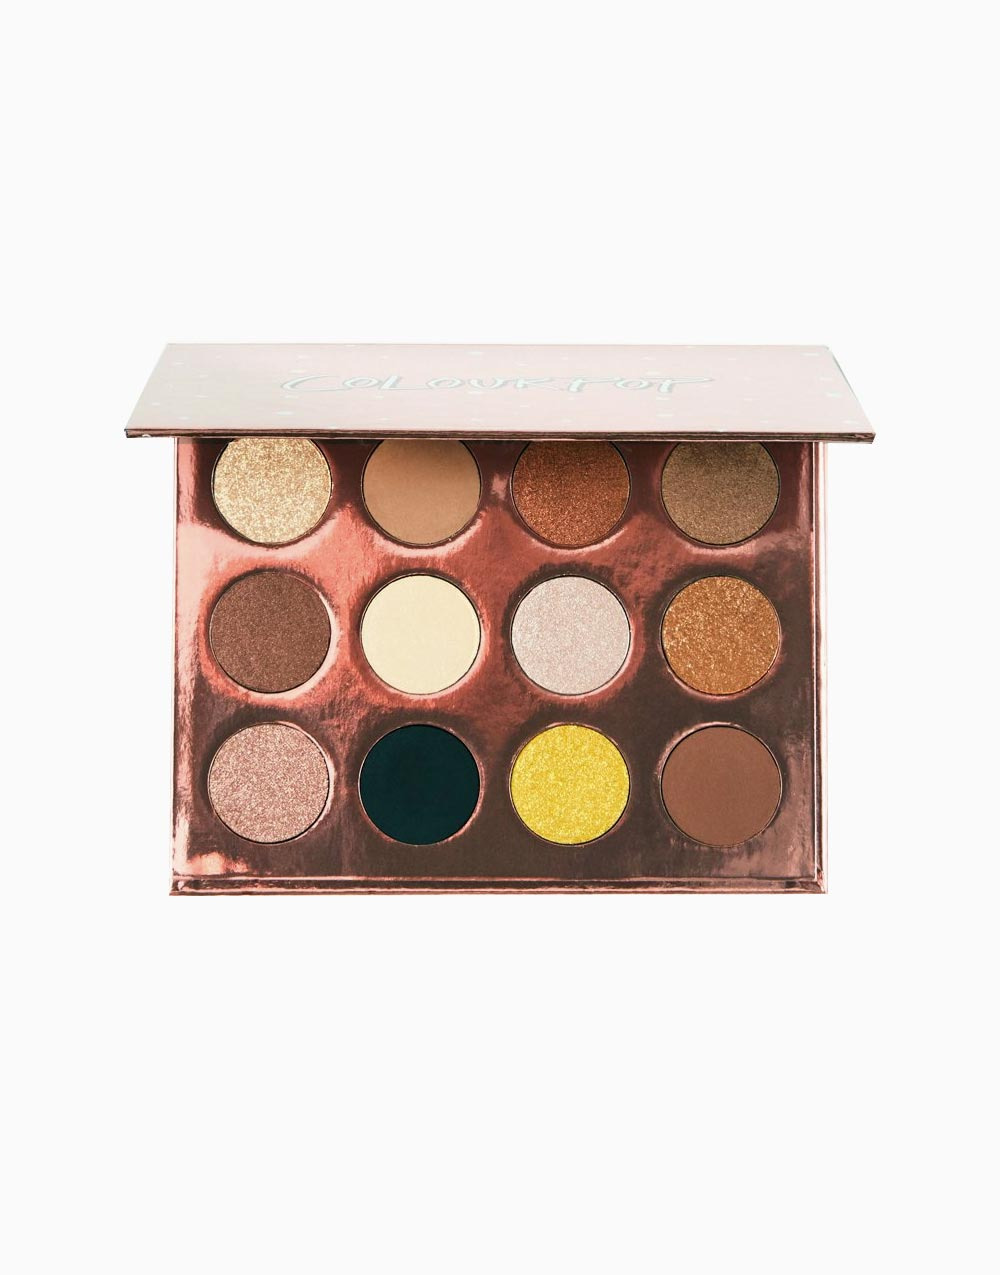 I Think I Love You Pressed Powder Shadow Palette by ColourPop